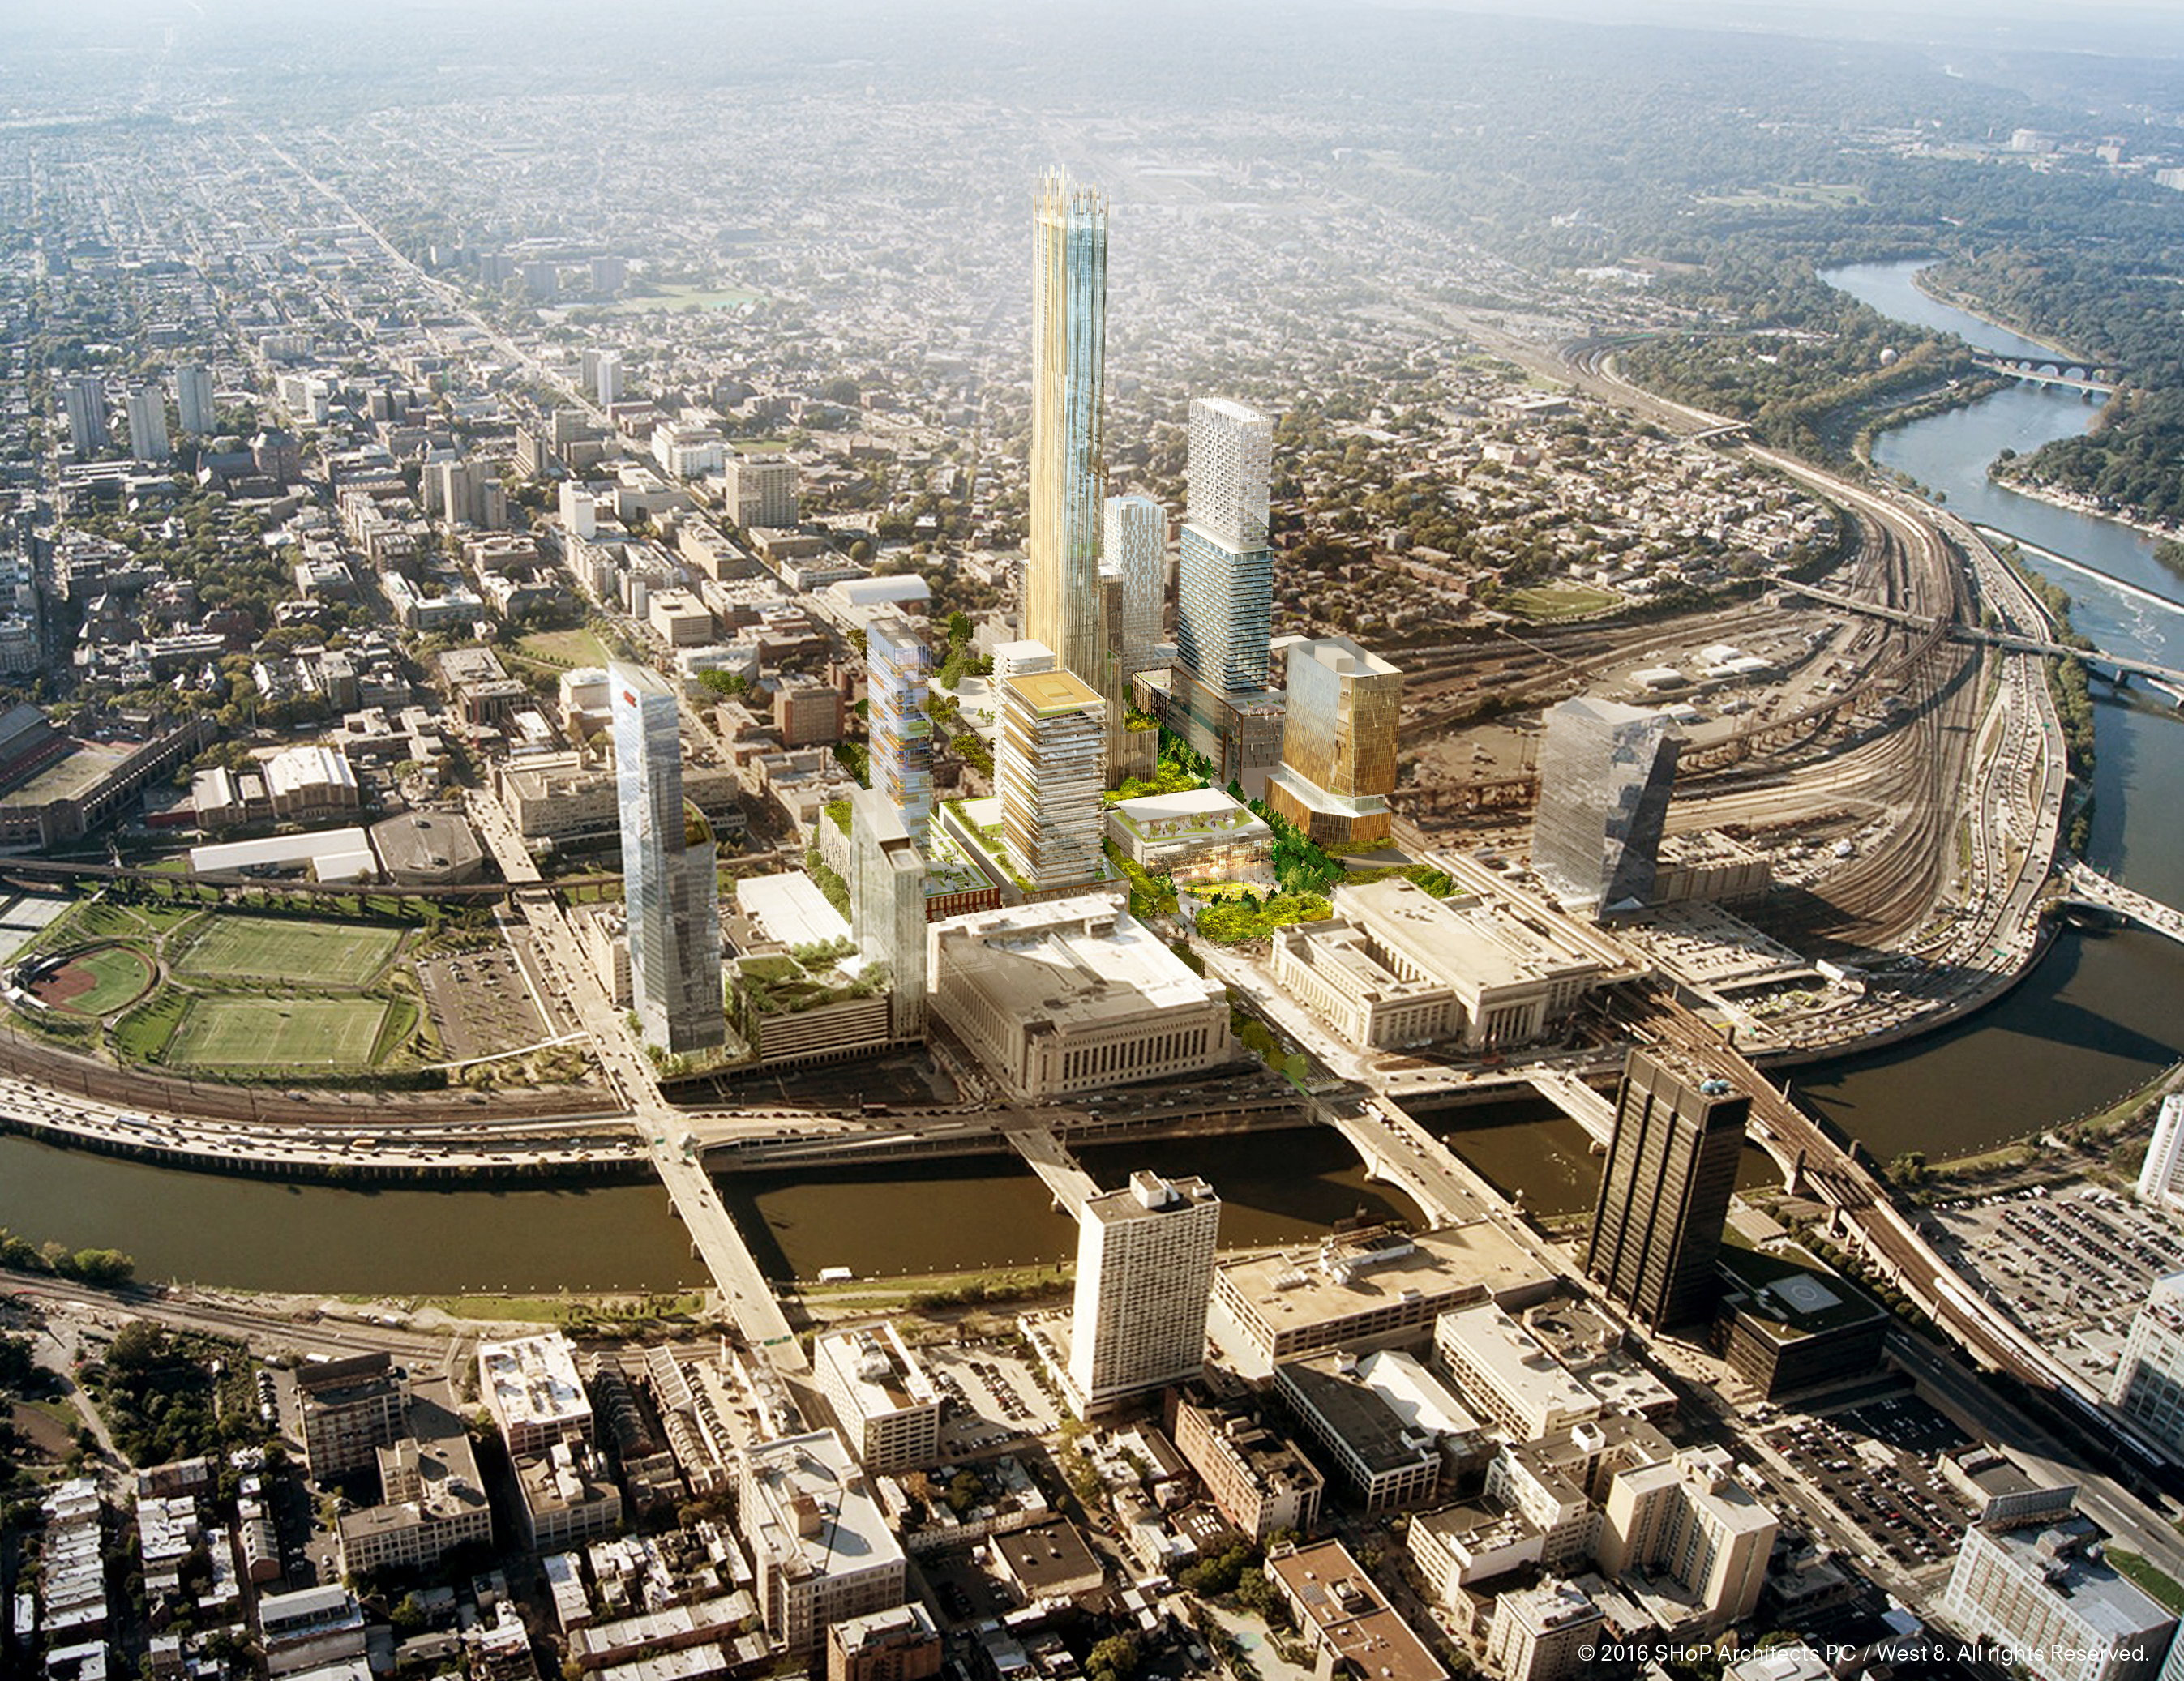 Drexel University Unveils Massive $3.5B Schuylkill Yards Development Plans  - Curbed Philly